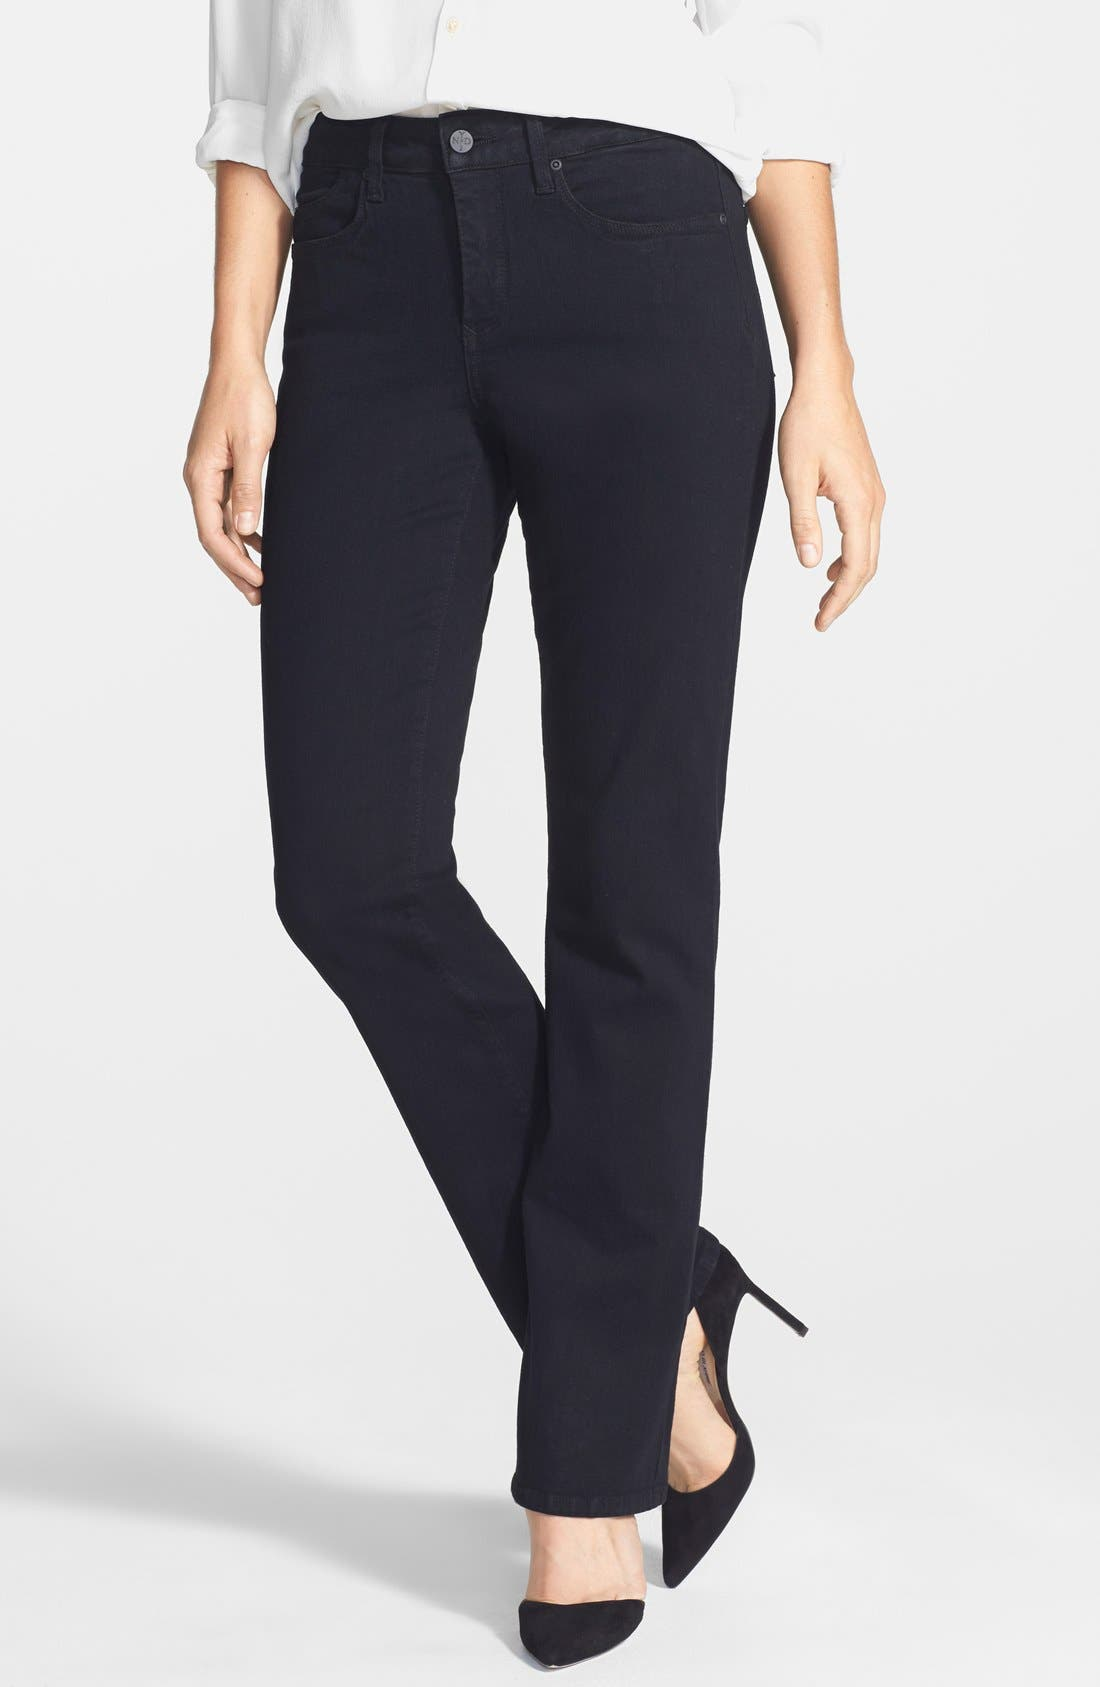 NYDJ 'Billie' Stretch Mini Bootcut Jeans (Black) (Regular & Petite)